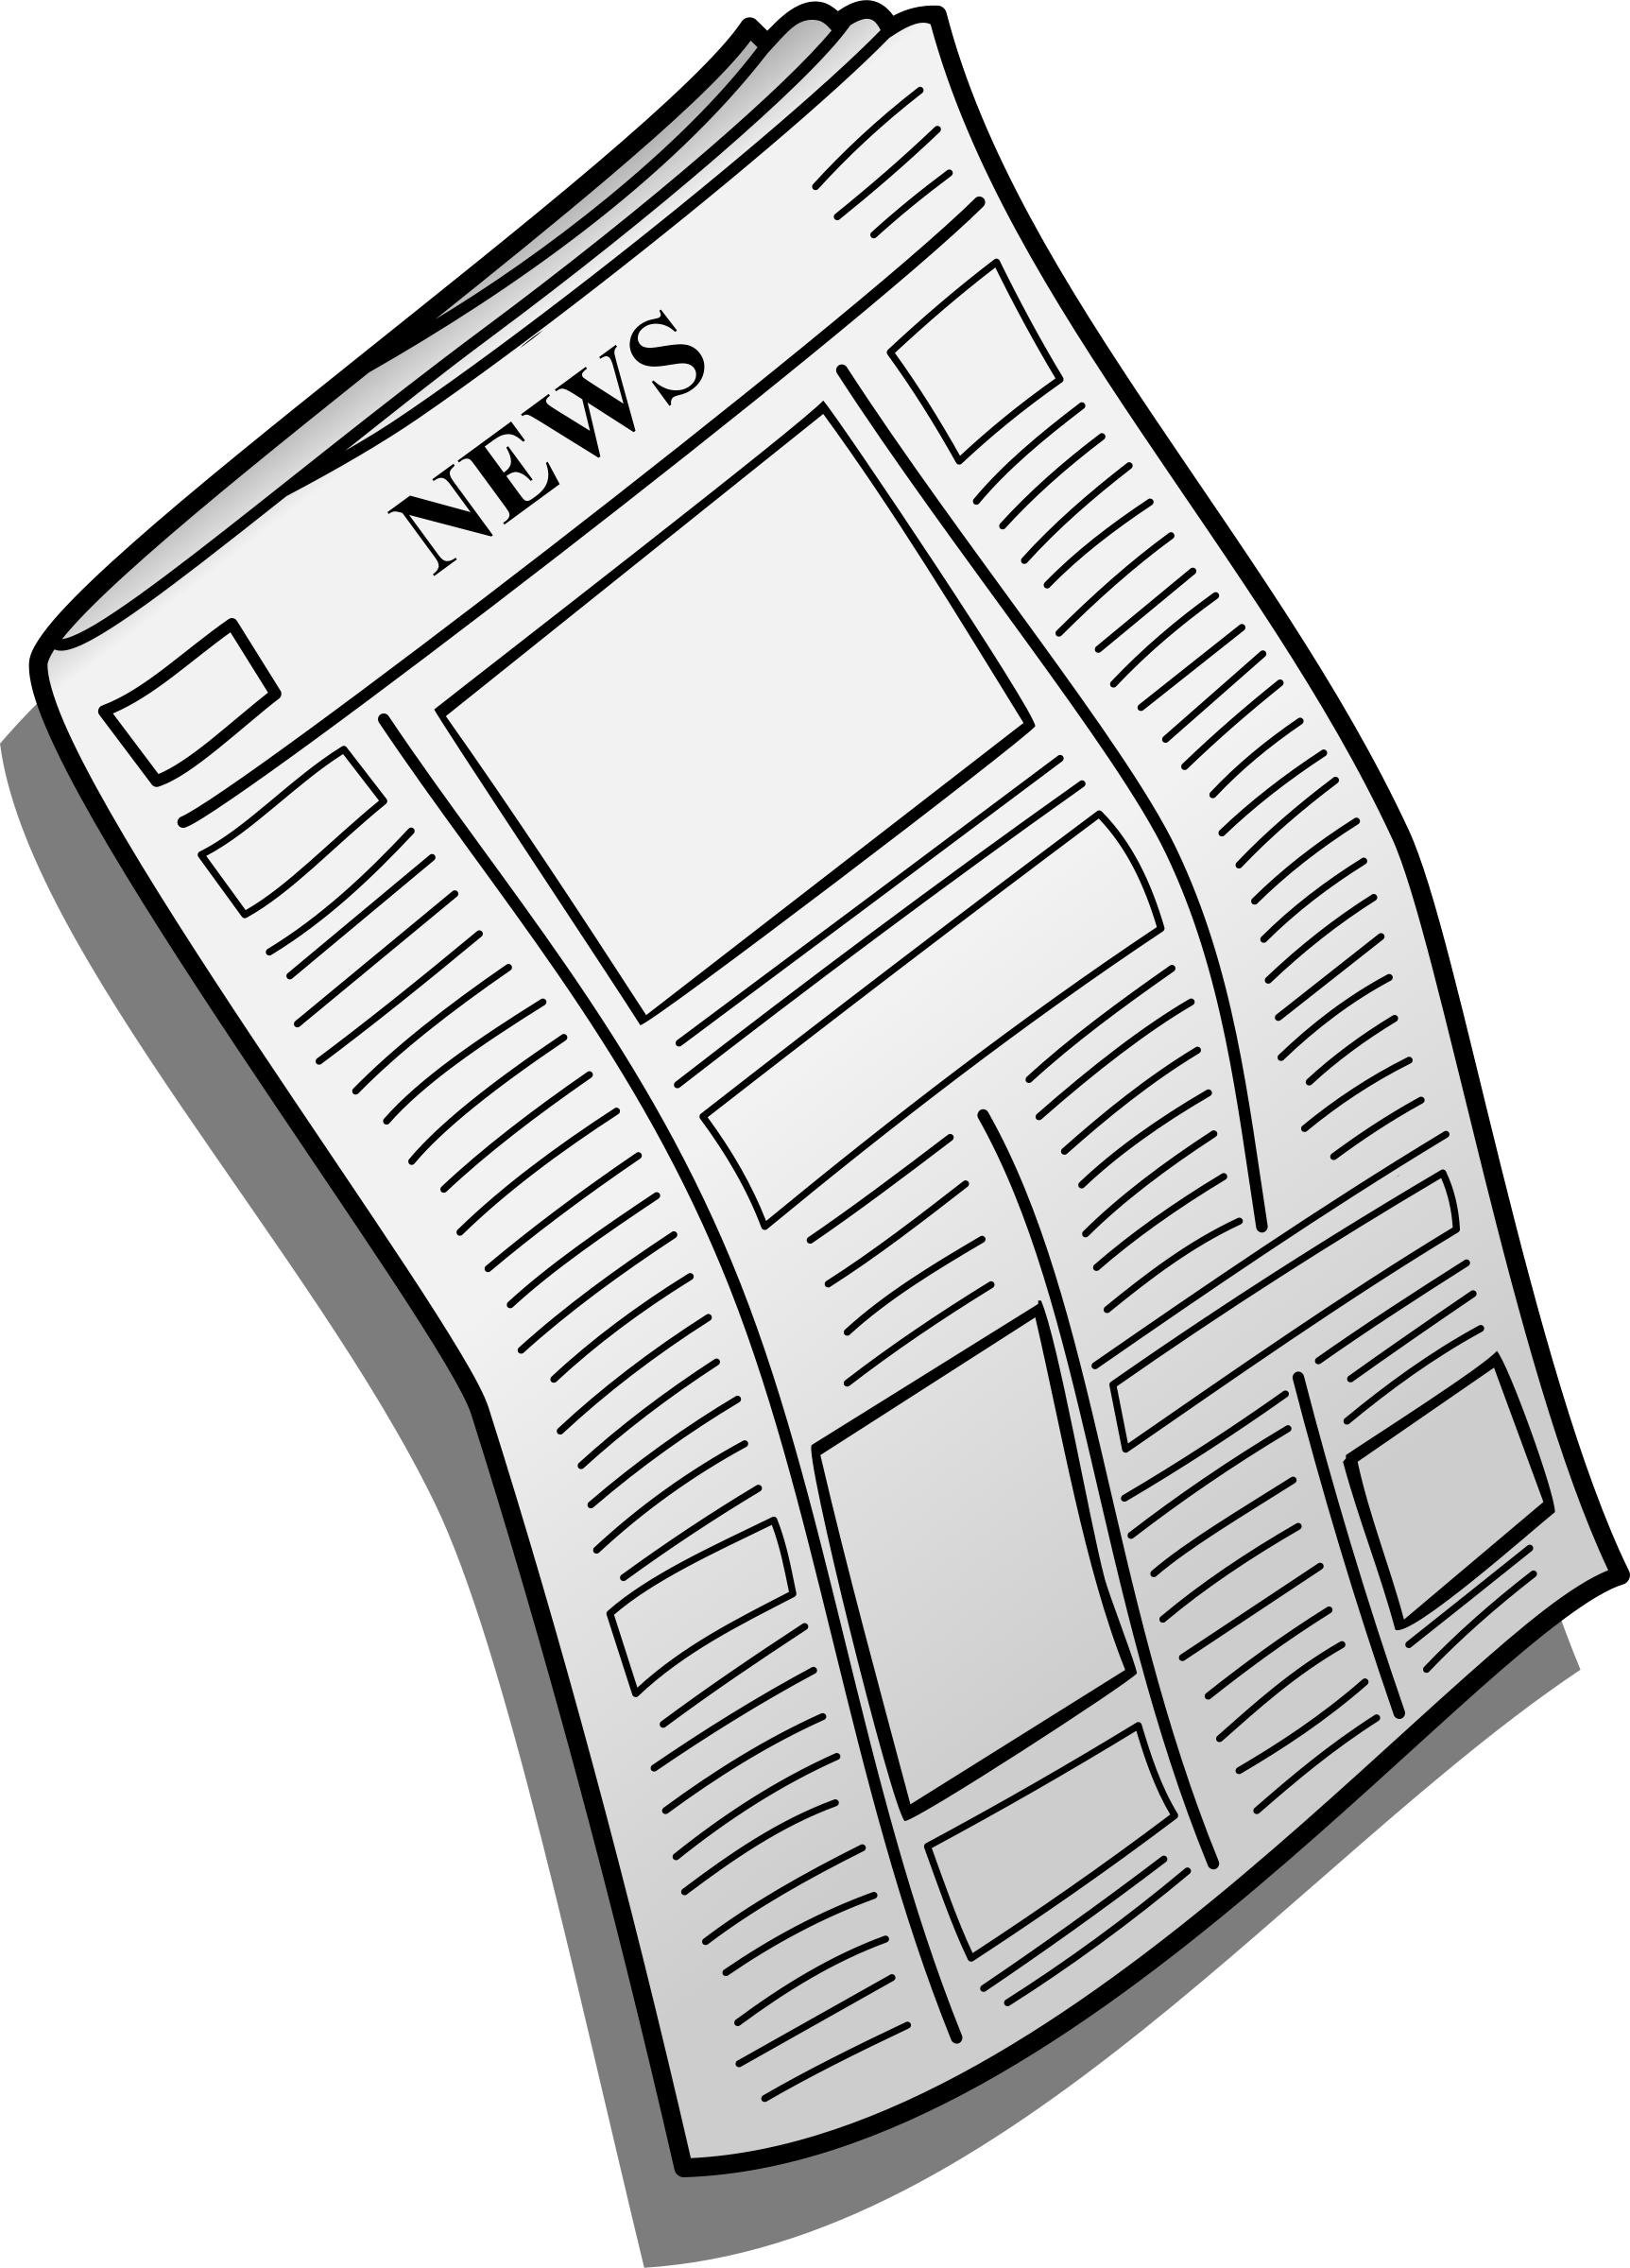 News paper clipart.